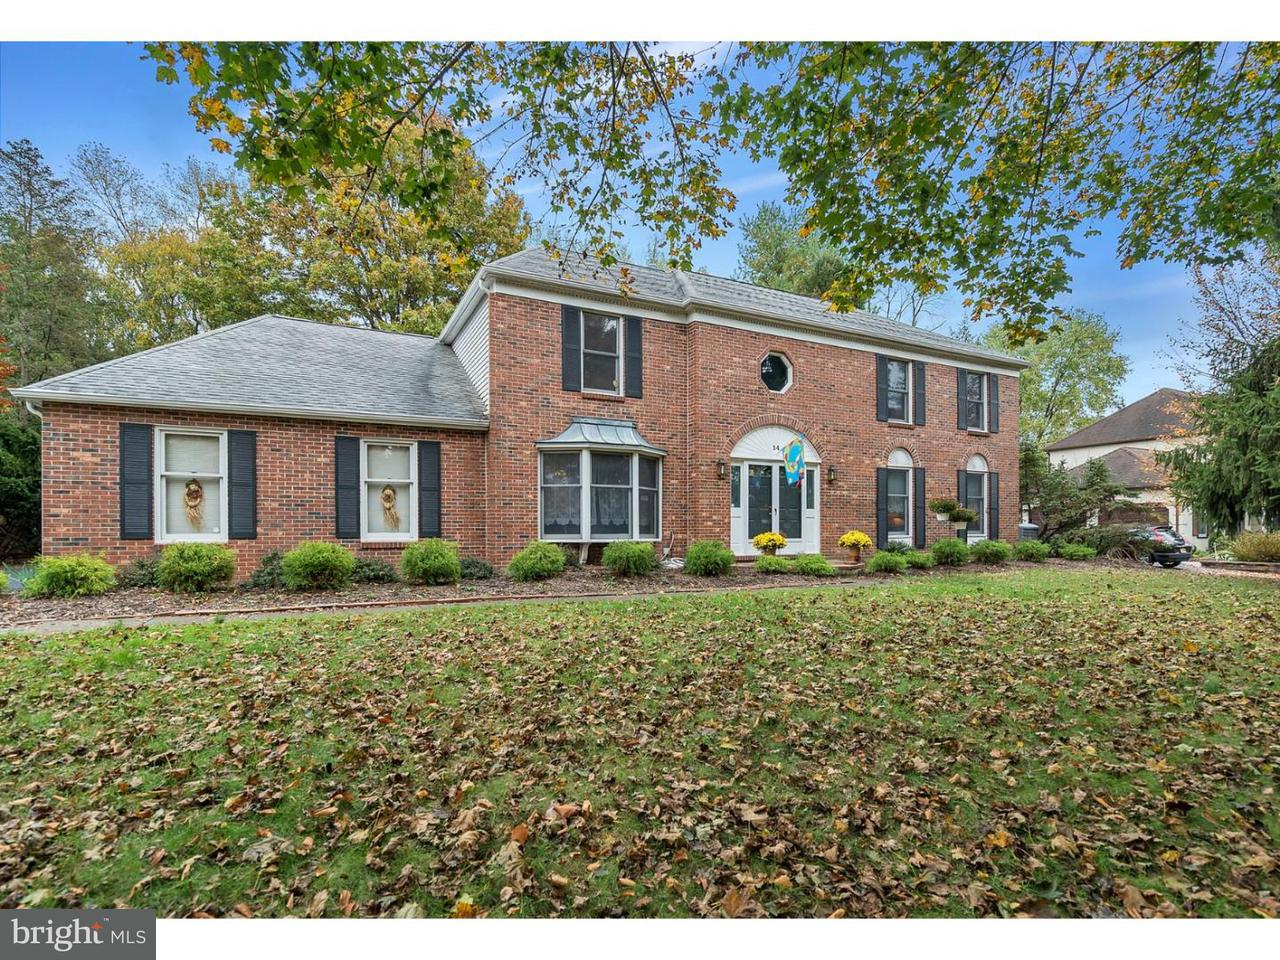 Single Family Home for Sale at 14 TRACEY Drive Lawrenceville, New Jersey 08648 United StatesMunicipality: Lawrence Township